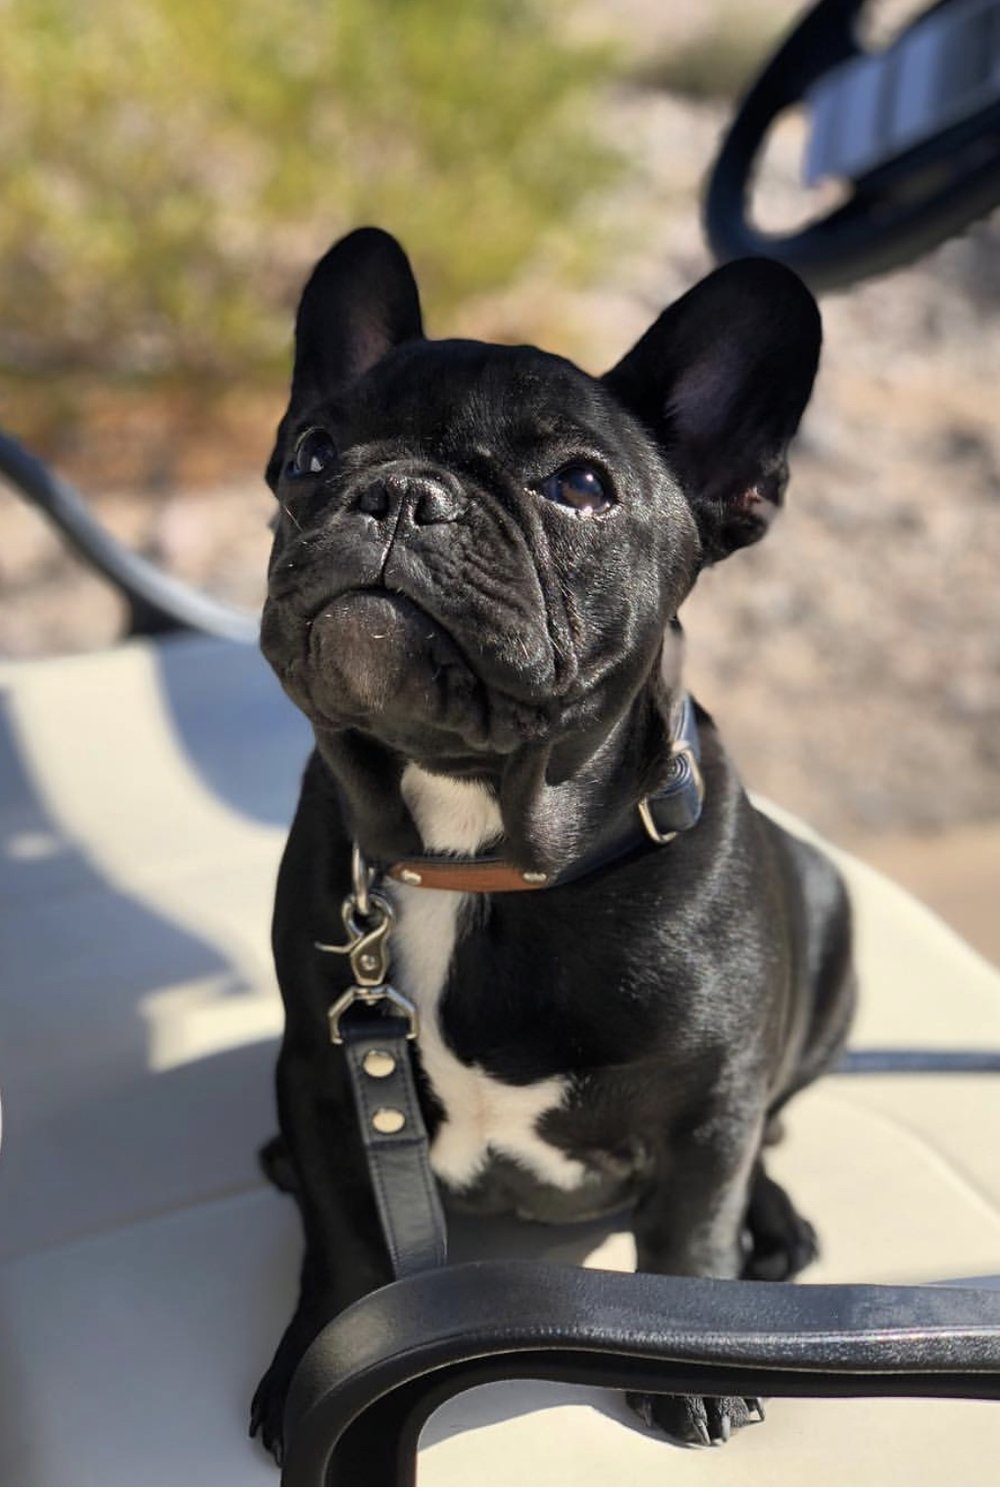 @fin_thefrenchie